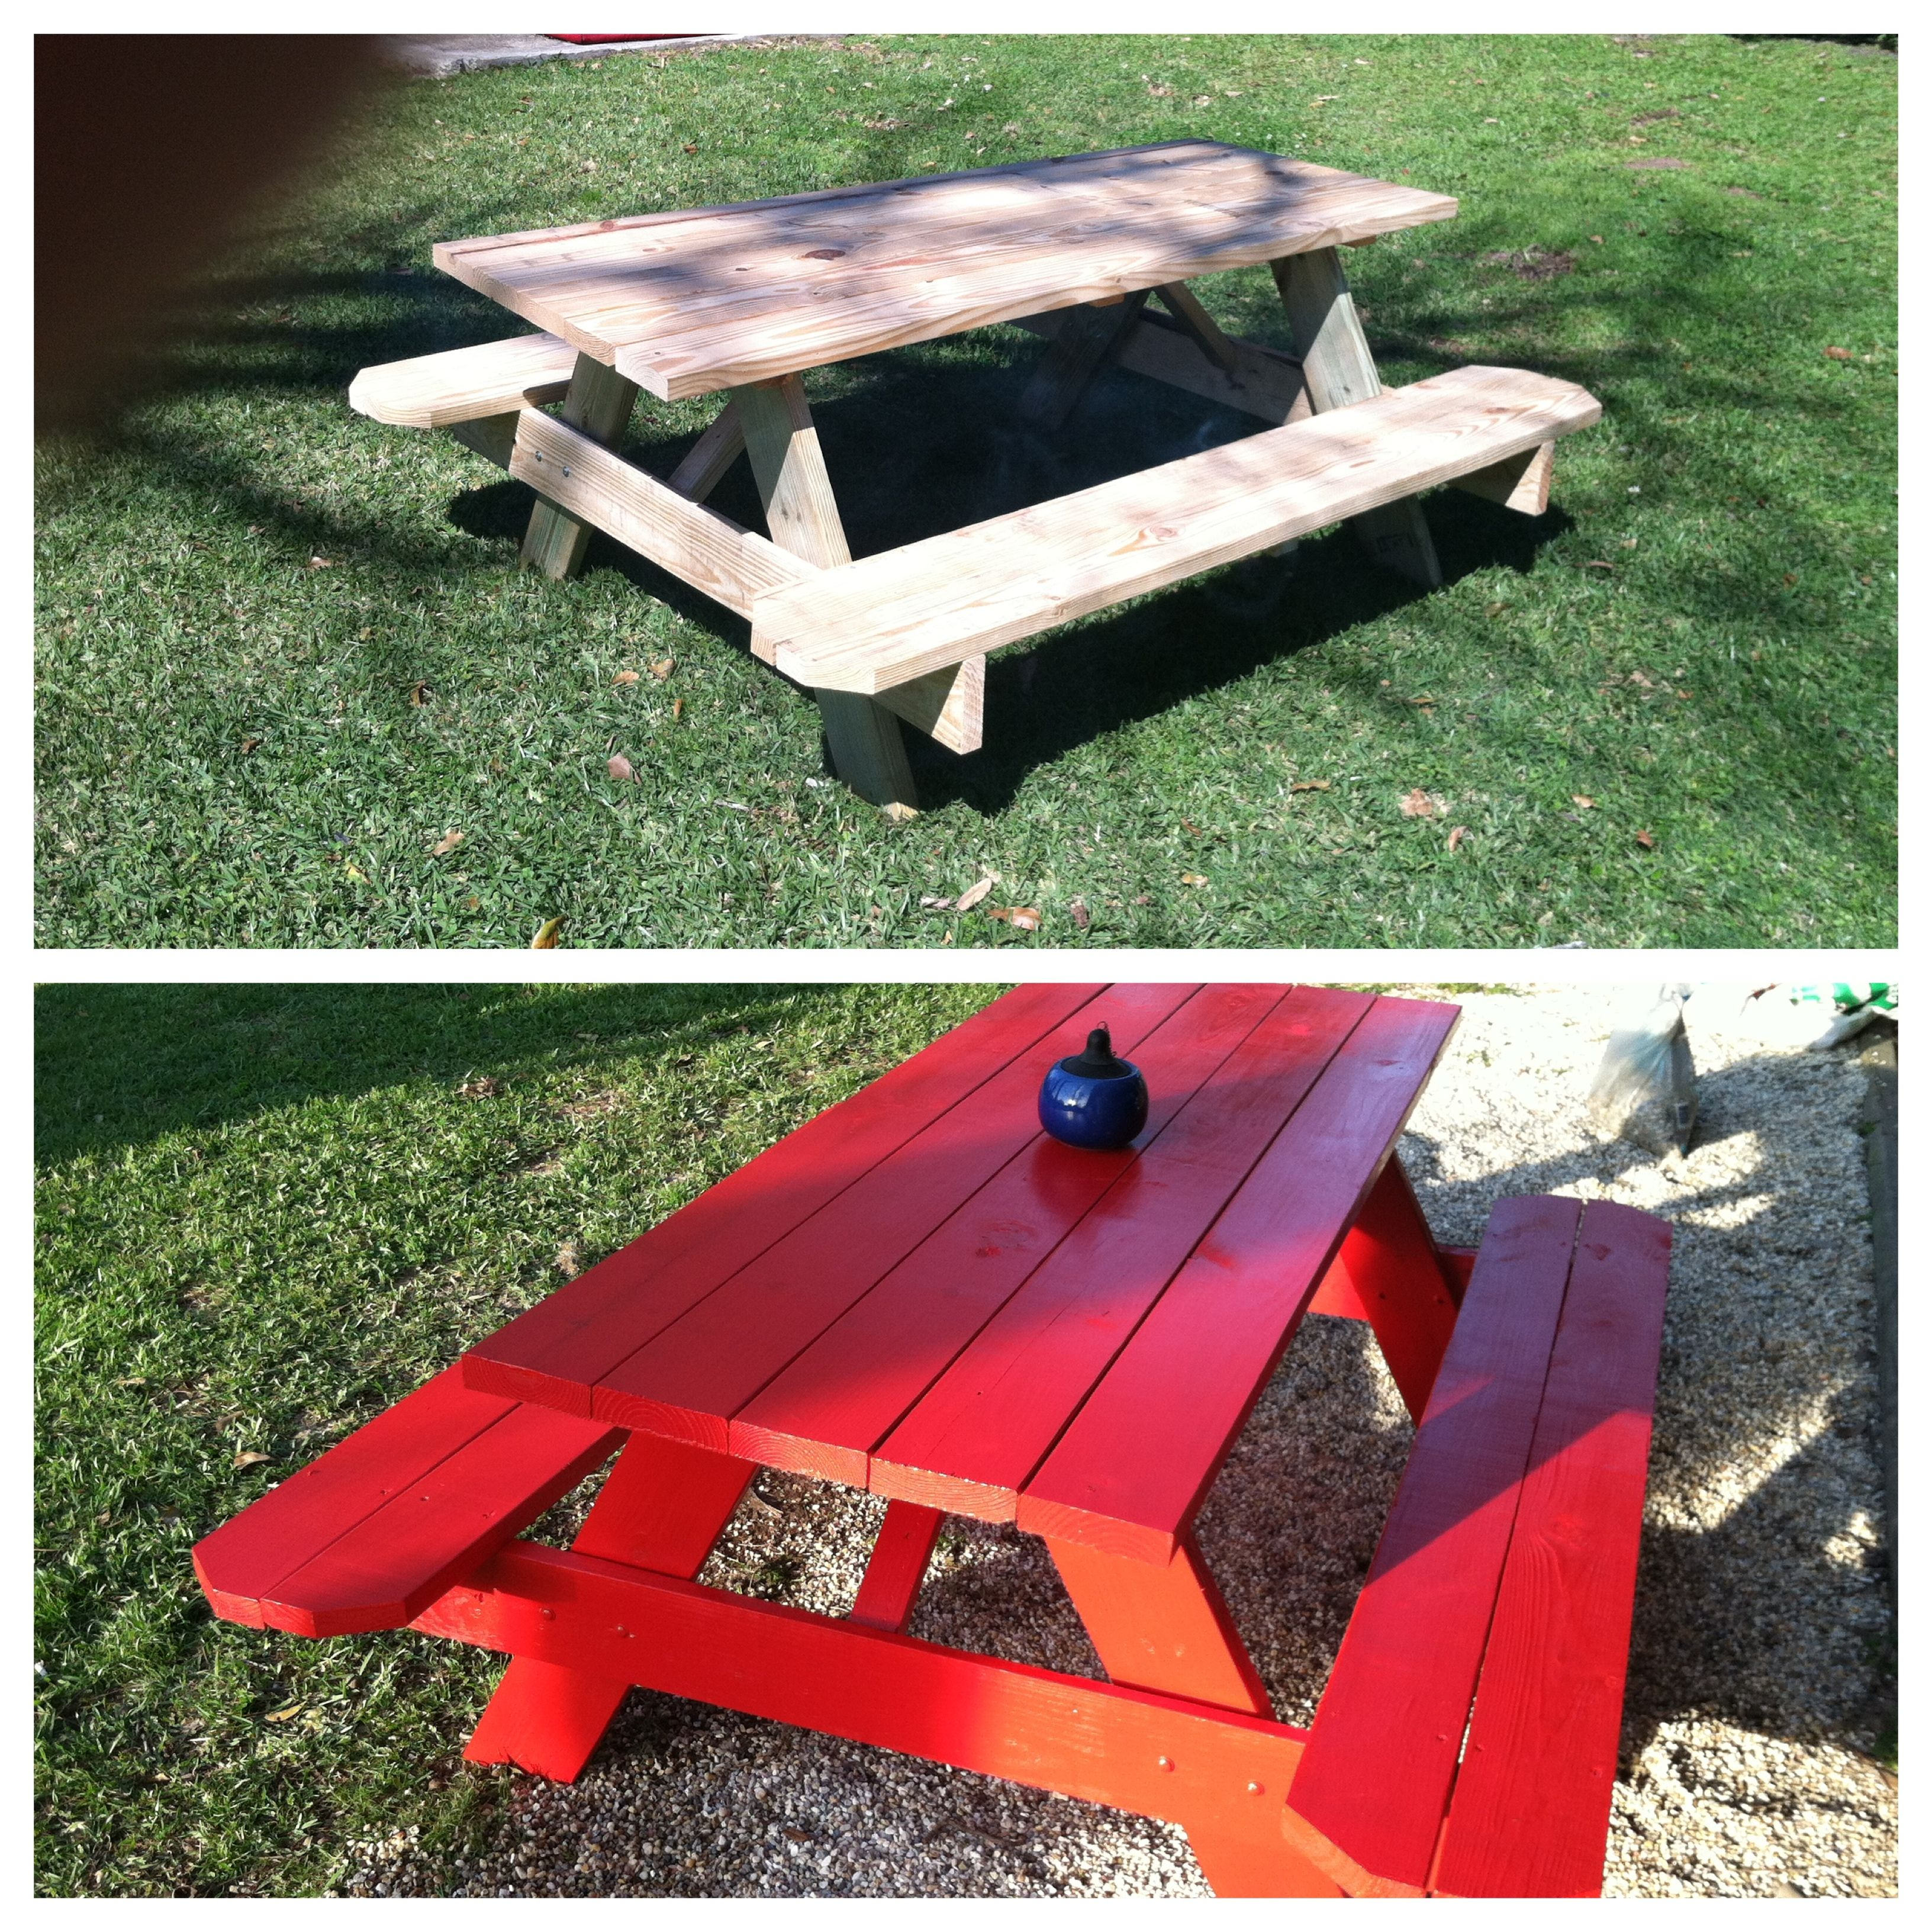 Lowes Picnic Table $88, Can Of Red Paint $11. Crawfish Boil Ready :)